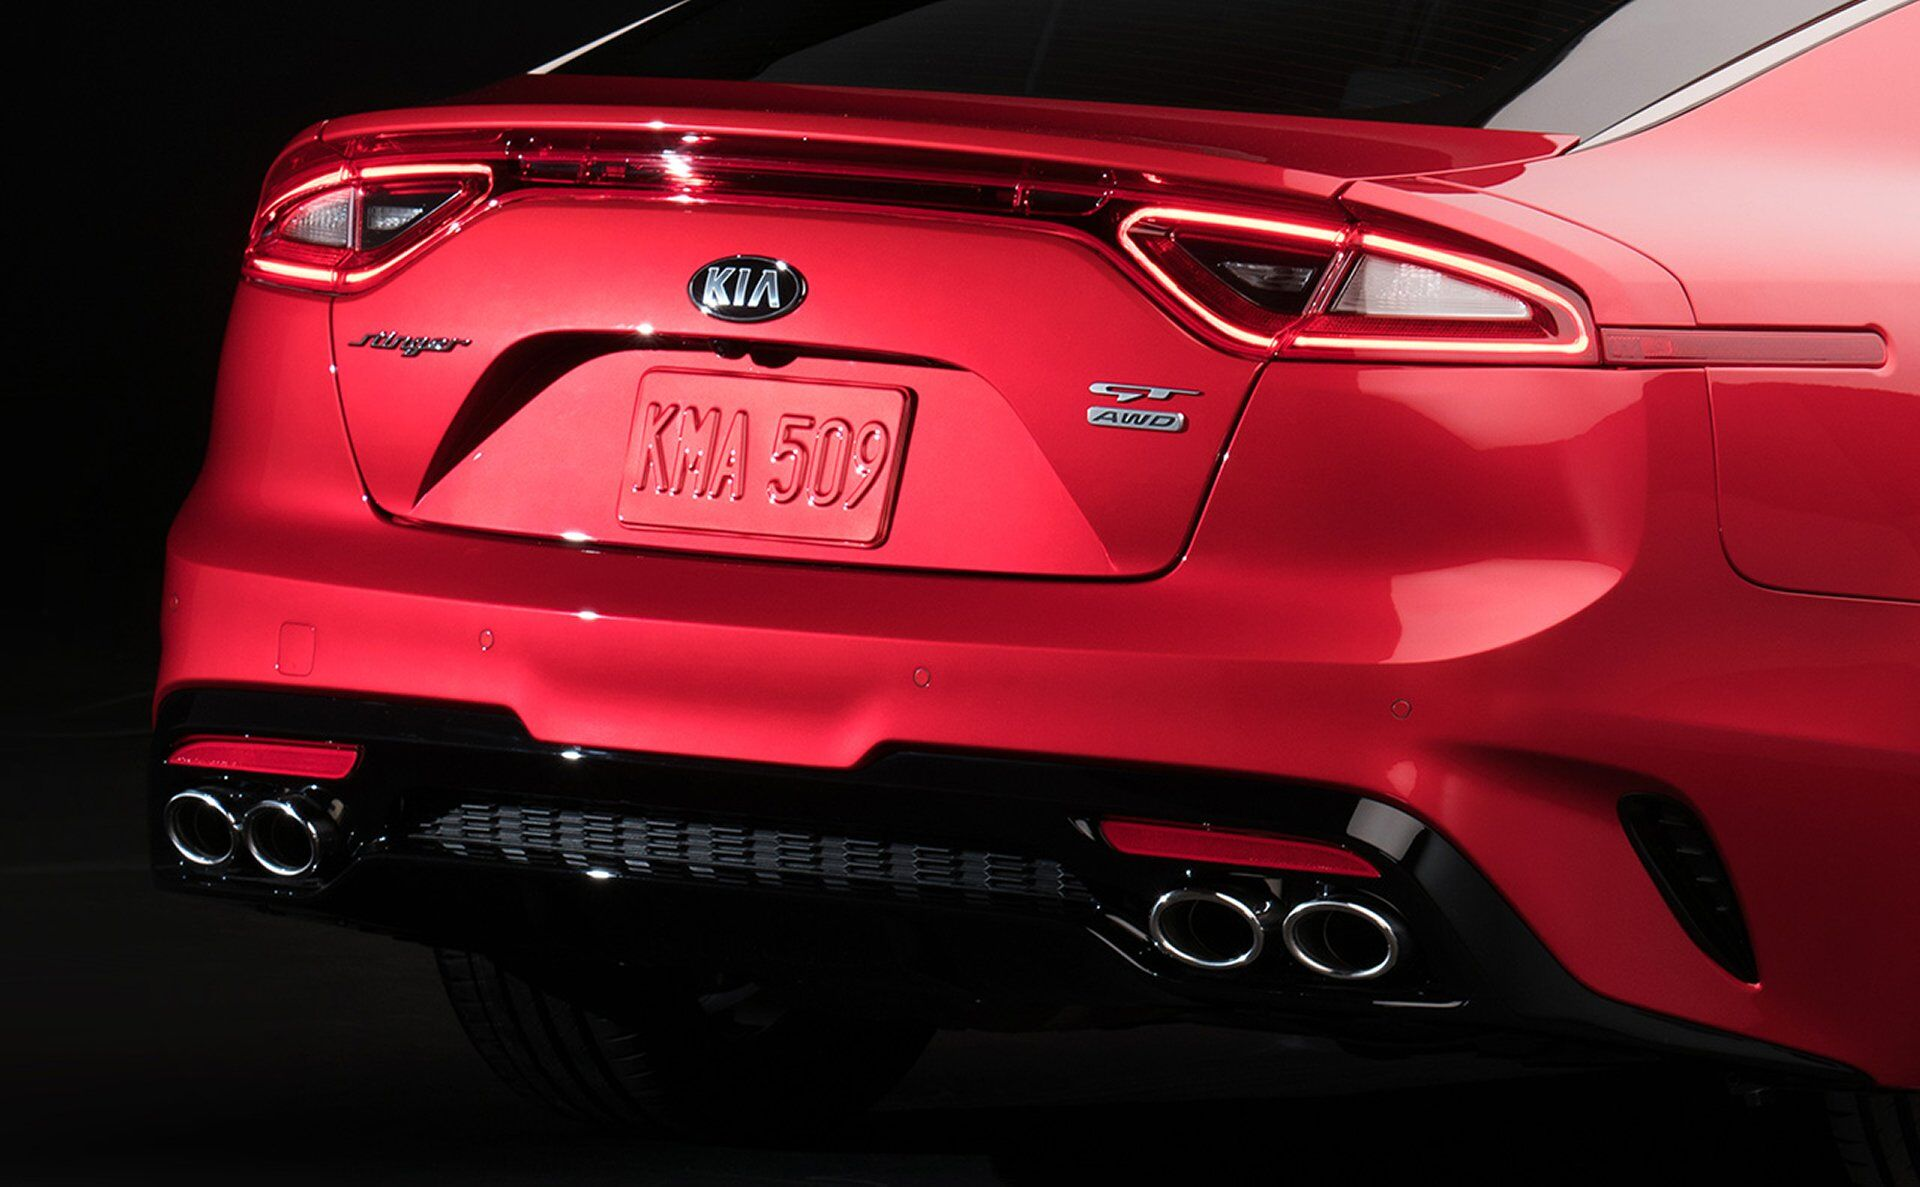 All-New Stinger Dealer Peoria Kia